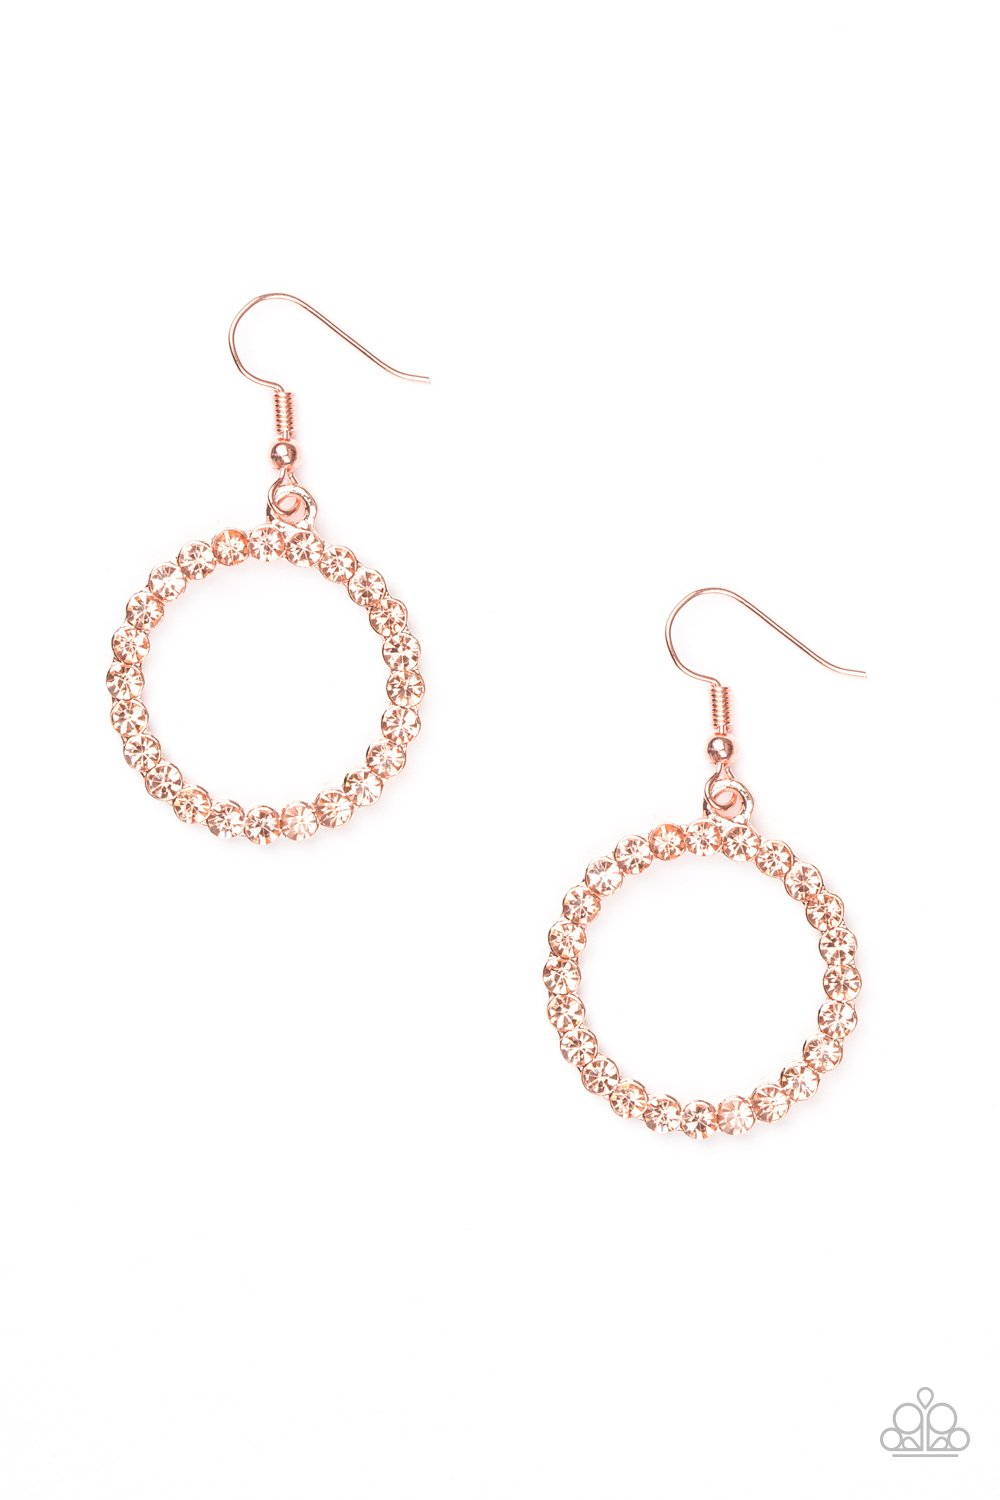 Paparazzi Accessories ~ Bubblicious - Copper